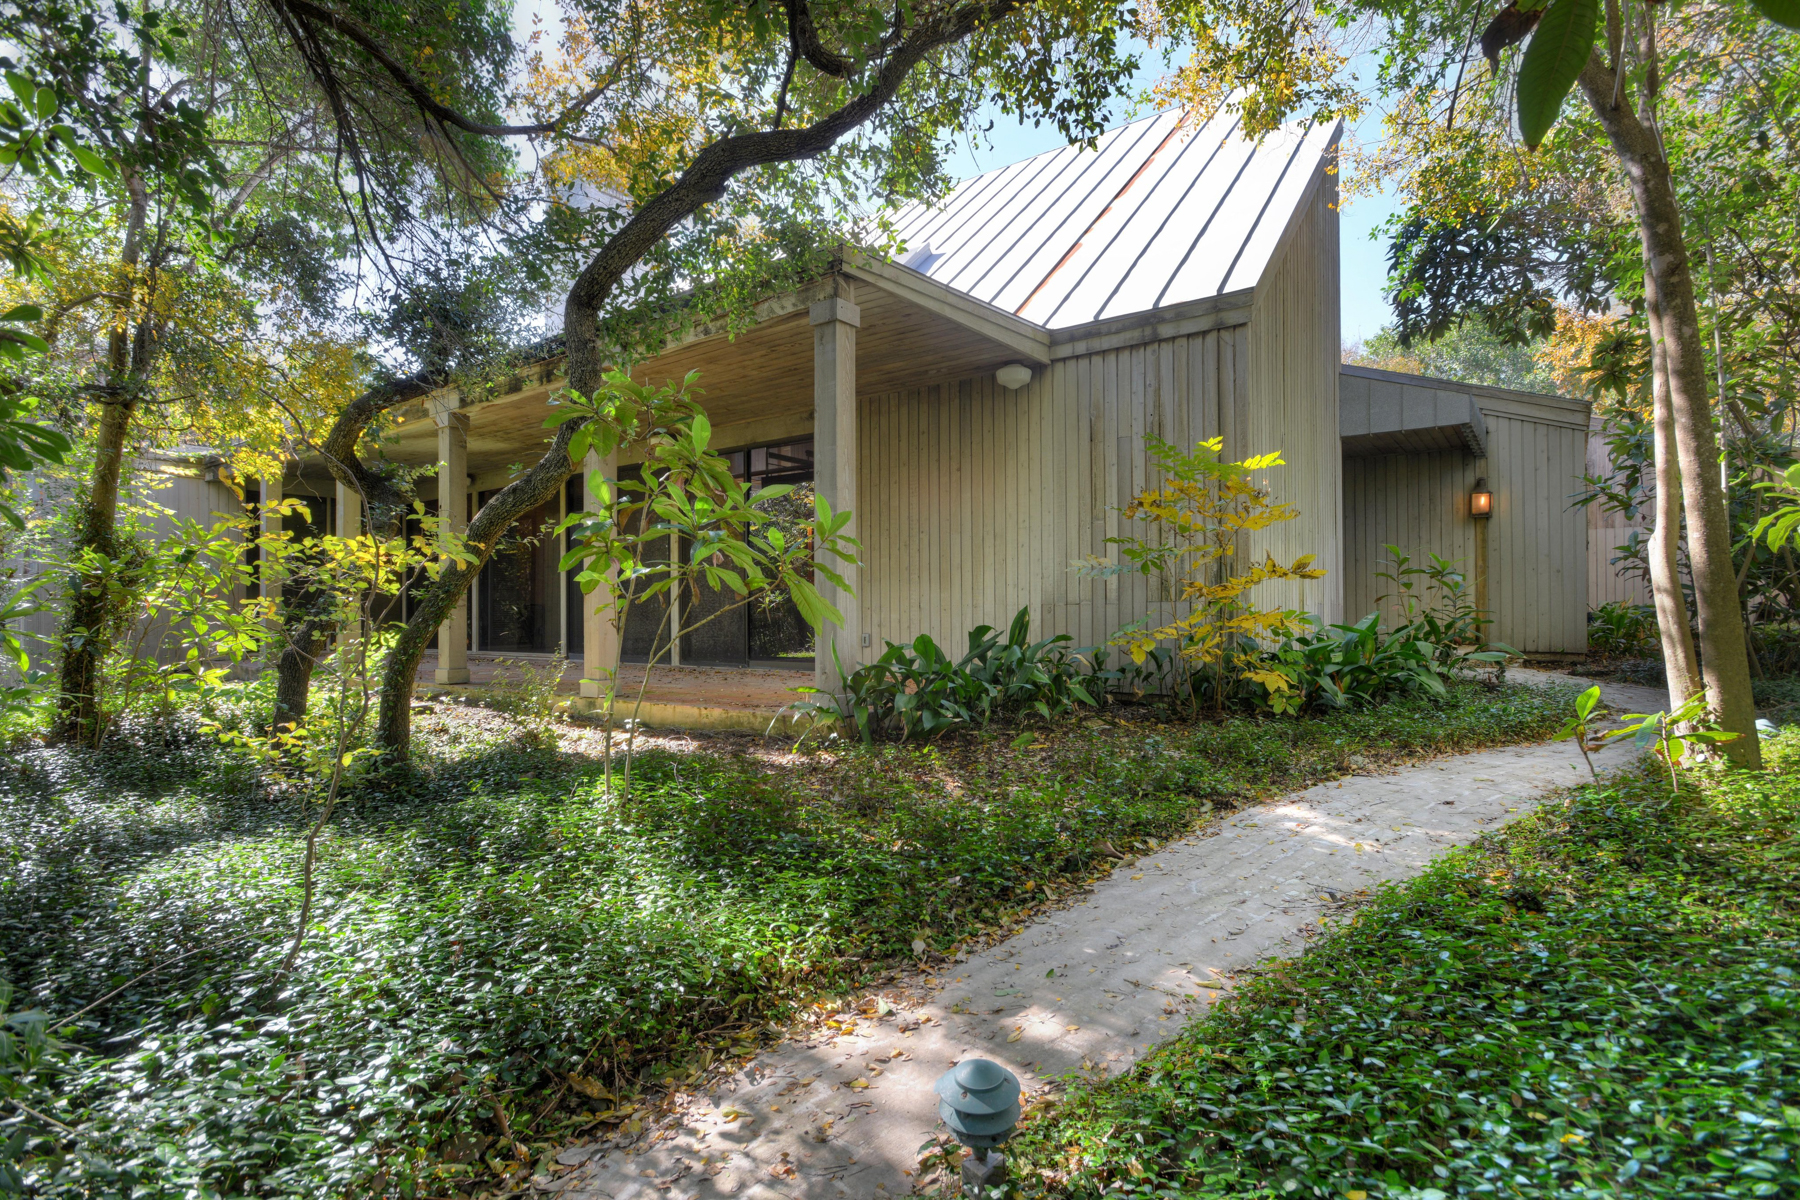 Single Family Home for Sale at Stunning Home in Northwood 8101 Countryside Dr Northwood, San Antonio, Texas, 78209 United States